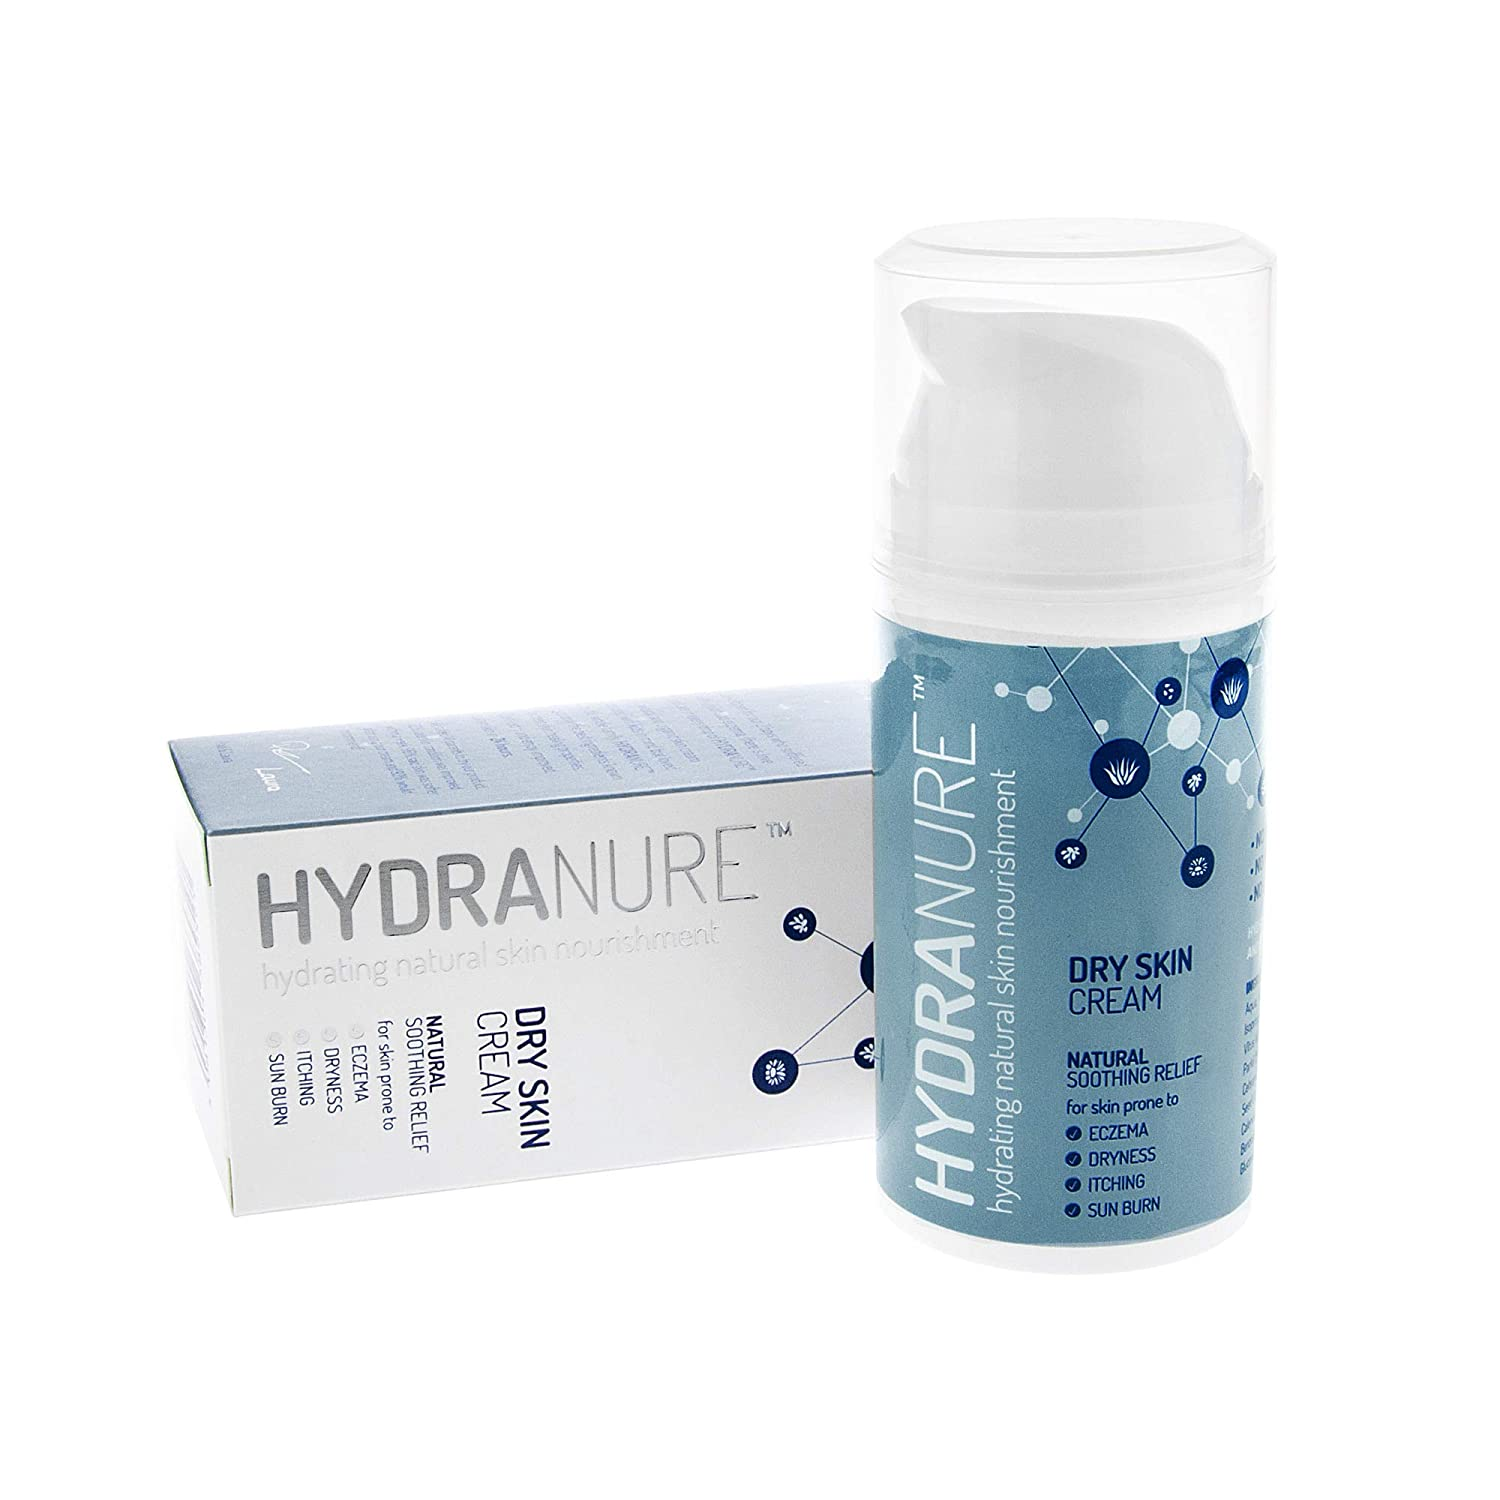 HydraNure Natural Organic Eczema Treatment for Babies 100ml – Cools Soothes  Repairs & Protects Baby's Skin, Created by Parents for Baby Eczema &